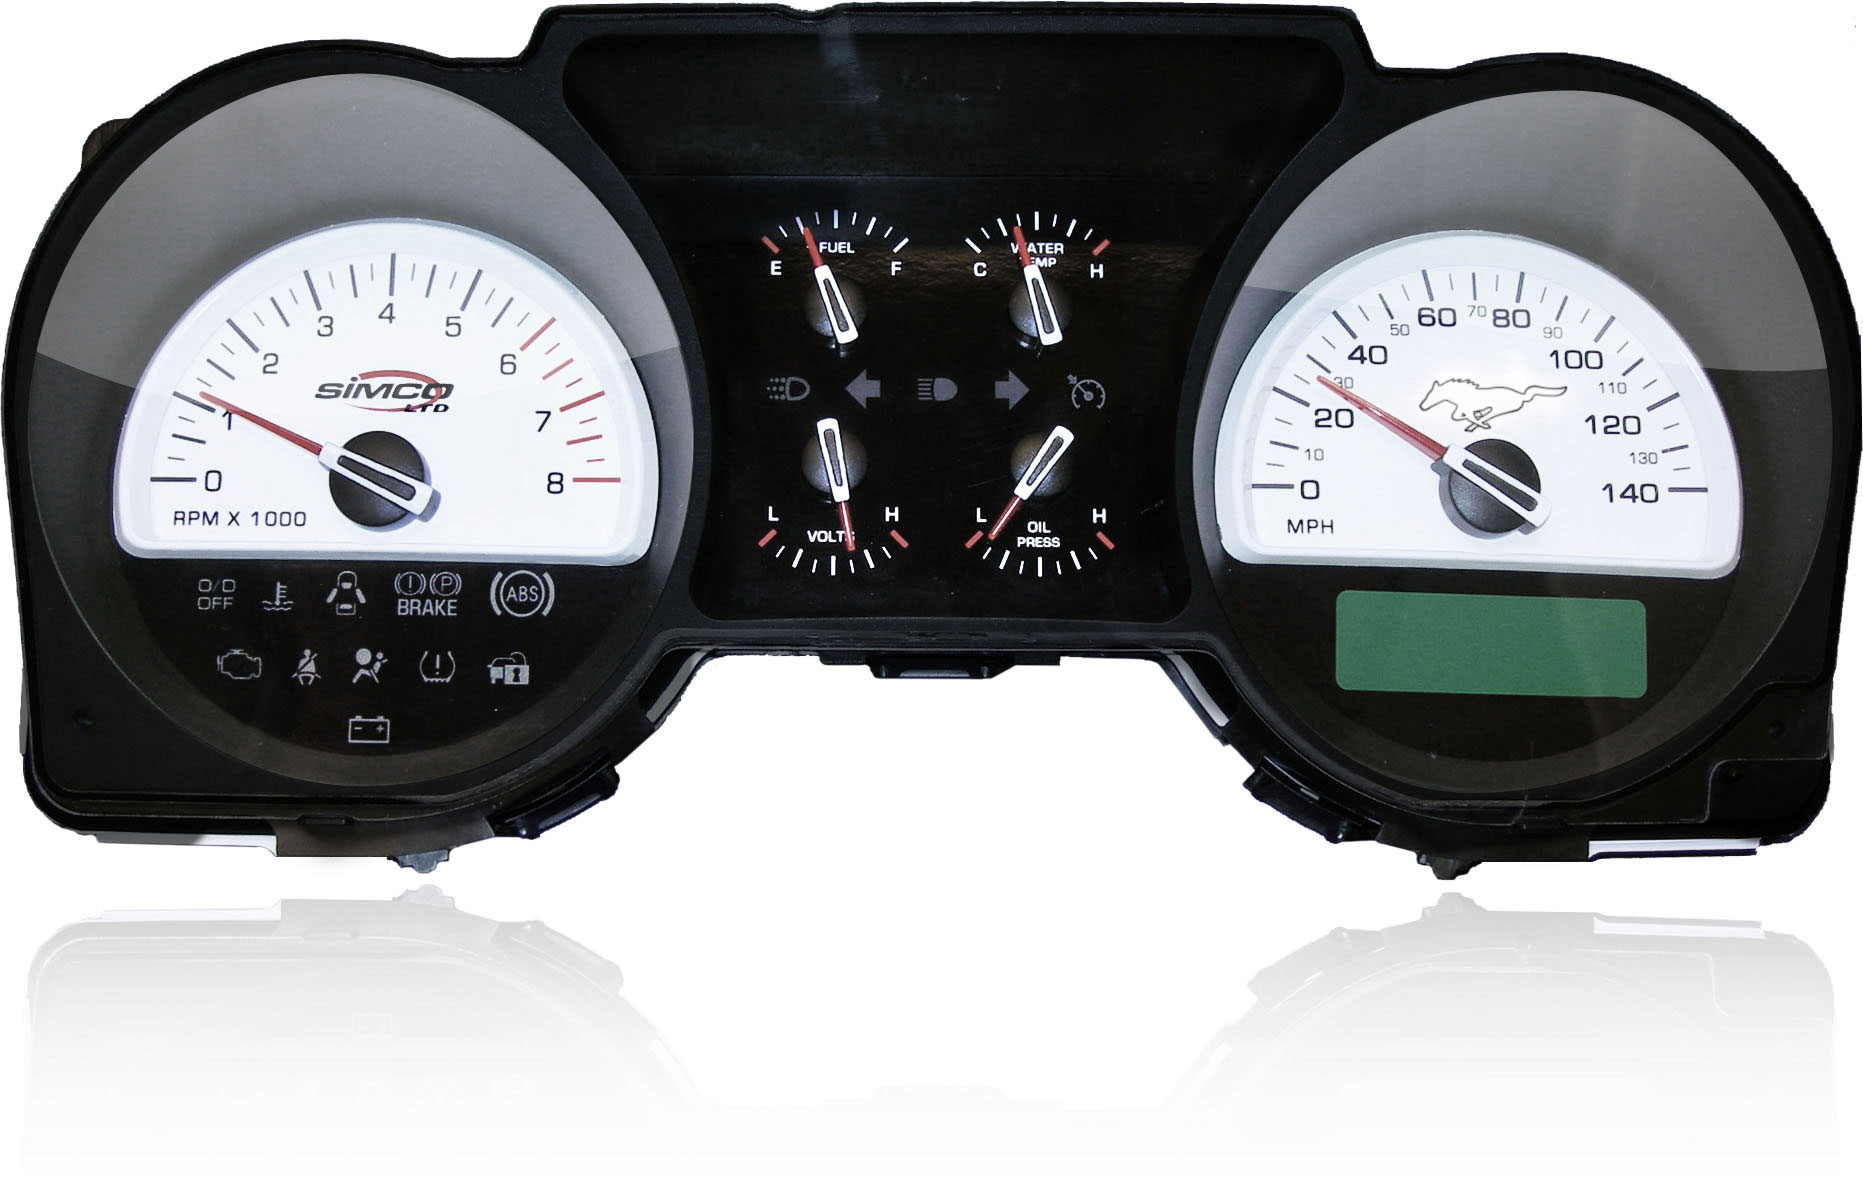 2005-2009 Simco Mustang GT - 6 GAUGE CLASSIC SERIES COLOR